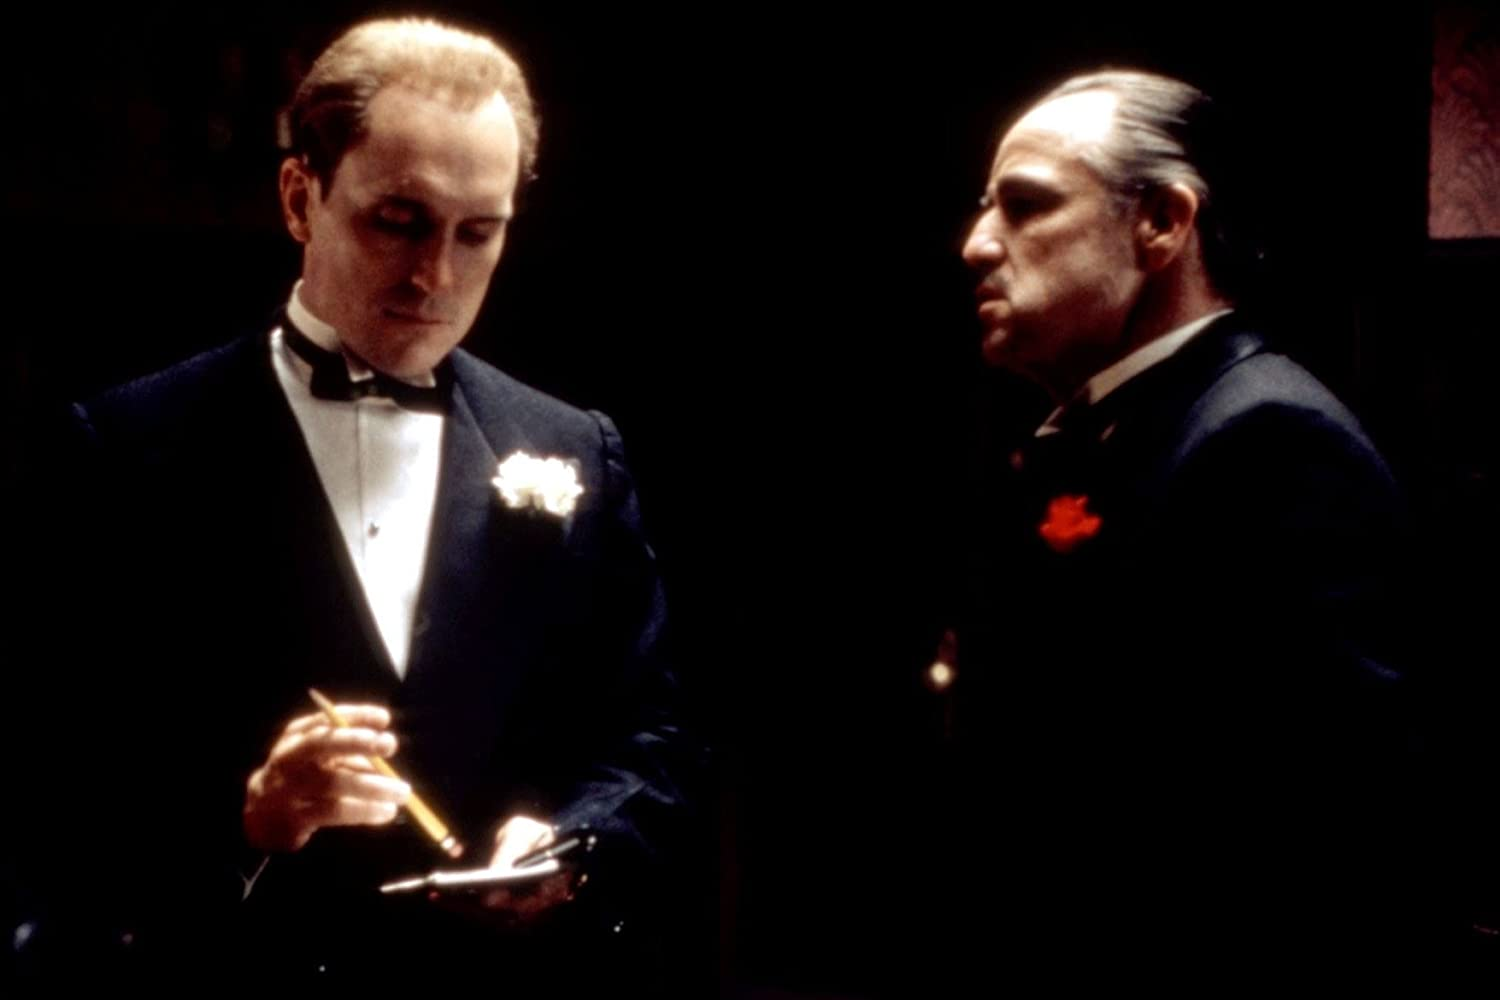 Marlon Brando and Robert Duvall in The Godfather (1972)